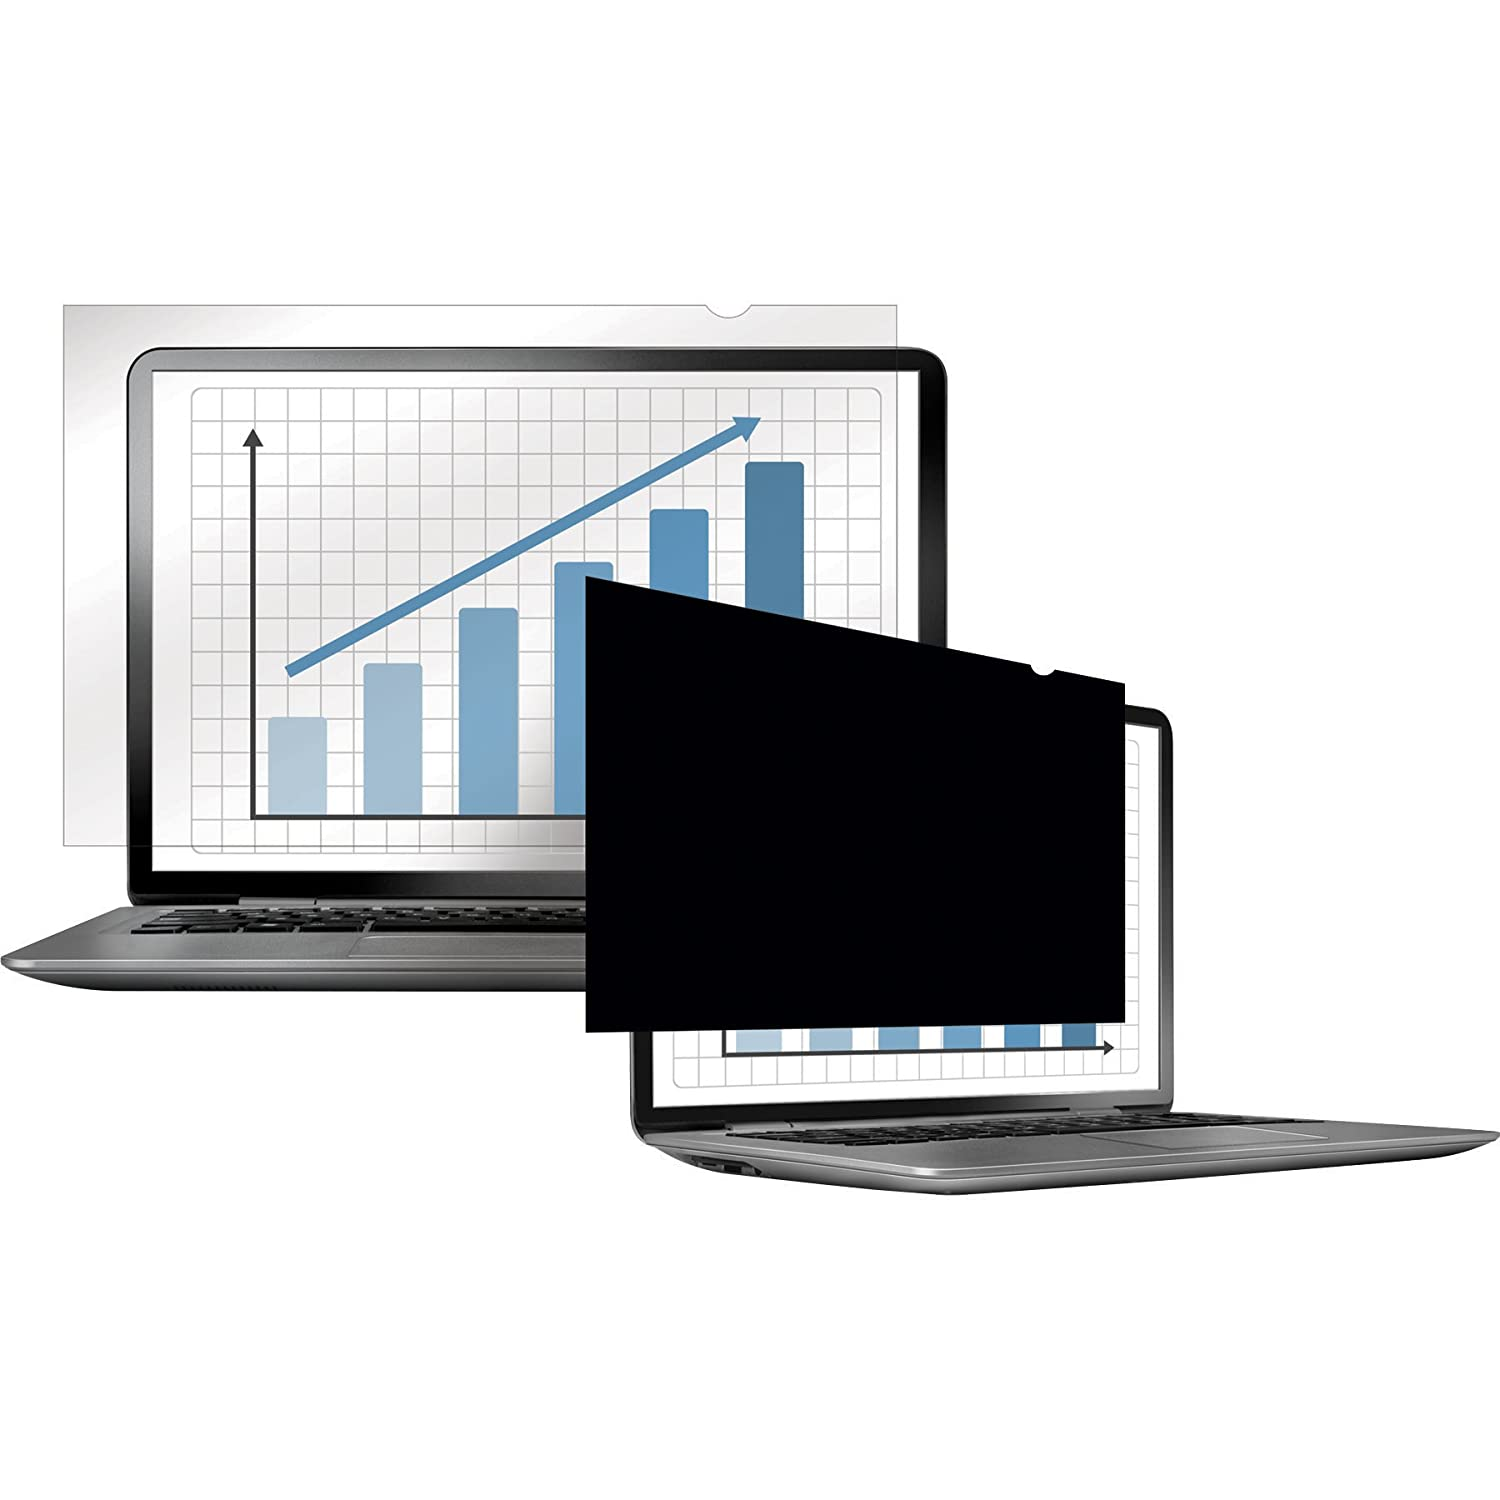 4807001 Fellowes PrivaScreen Privacy Filter for 21.5 Inch Widescreen Monitors 16:9